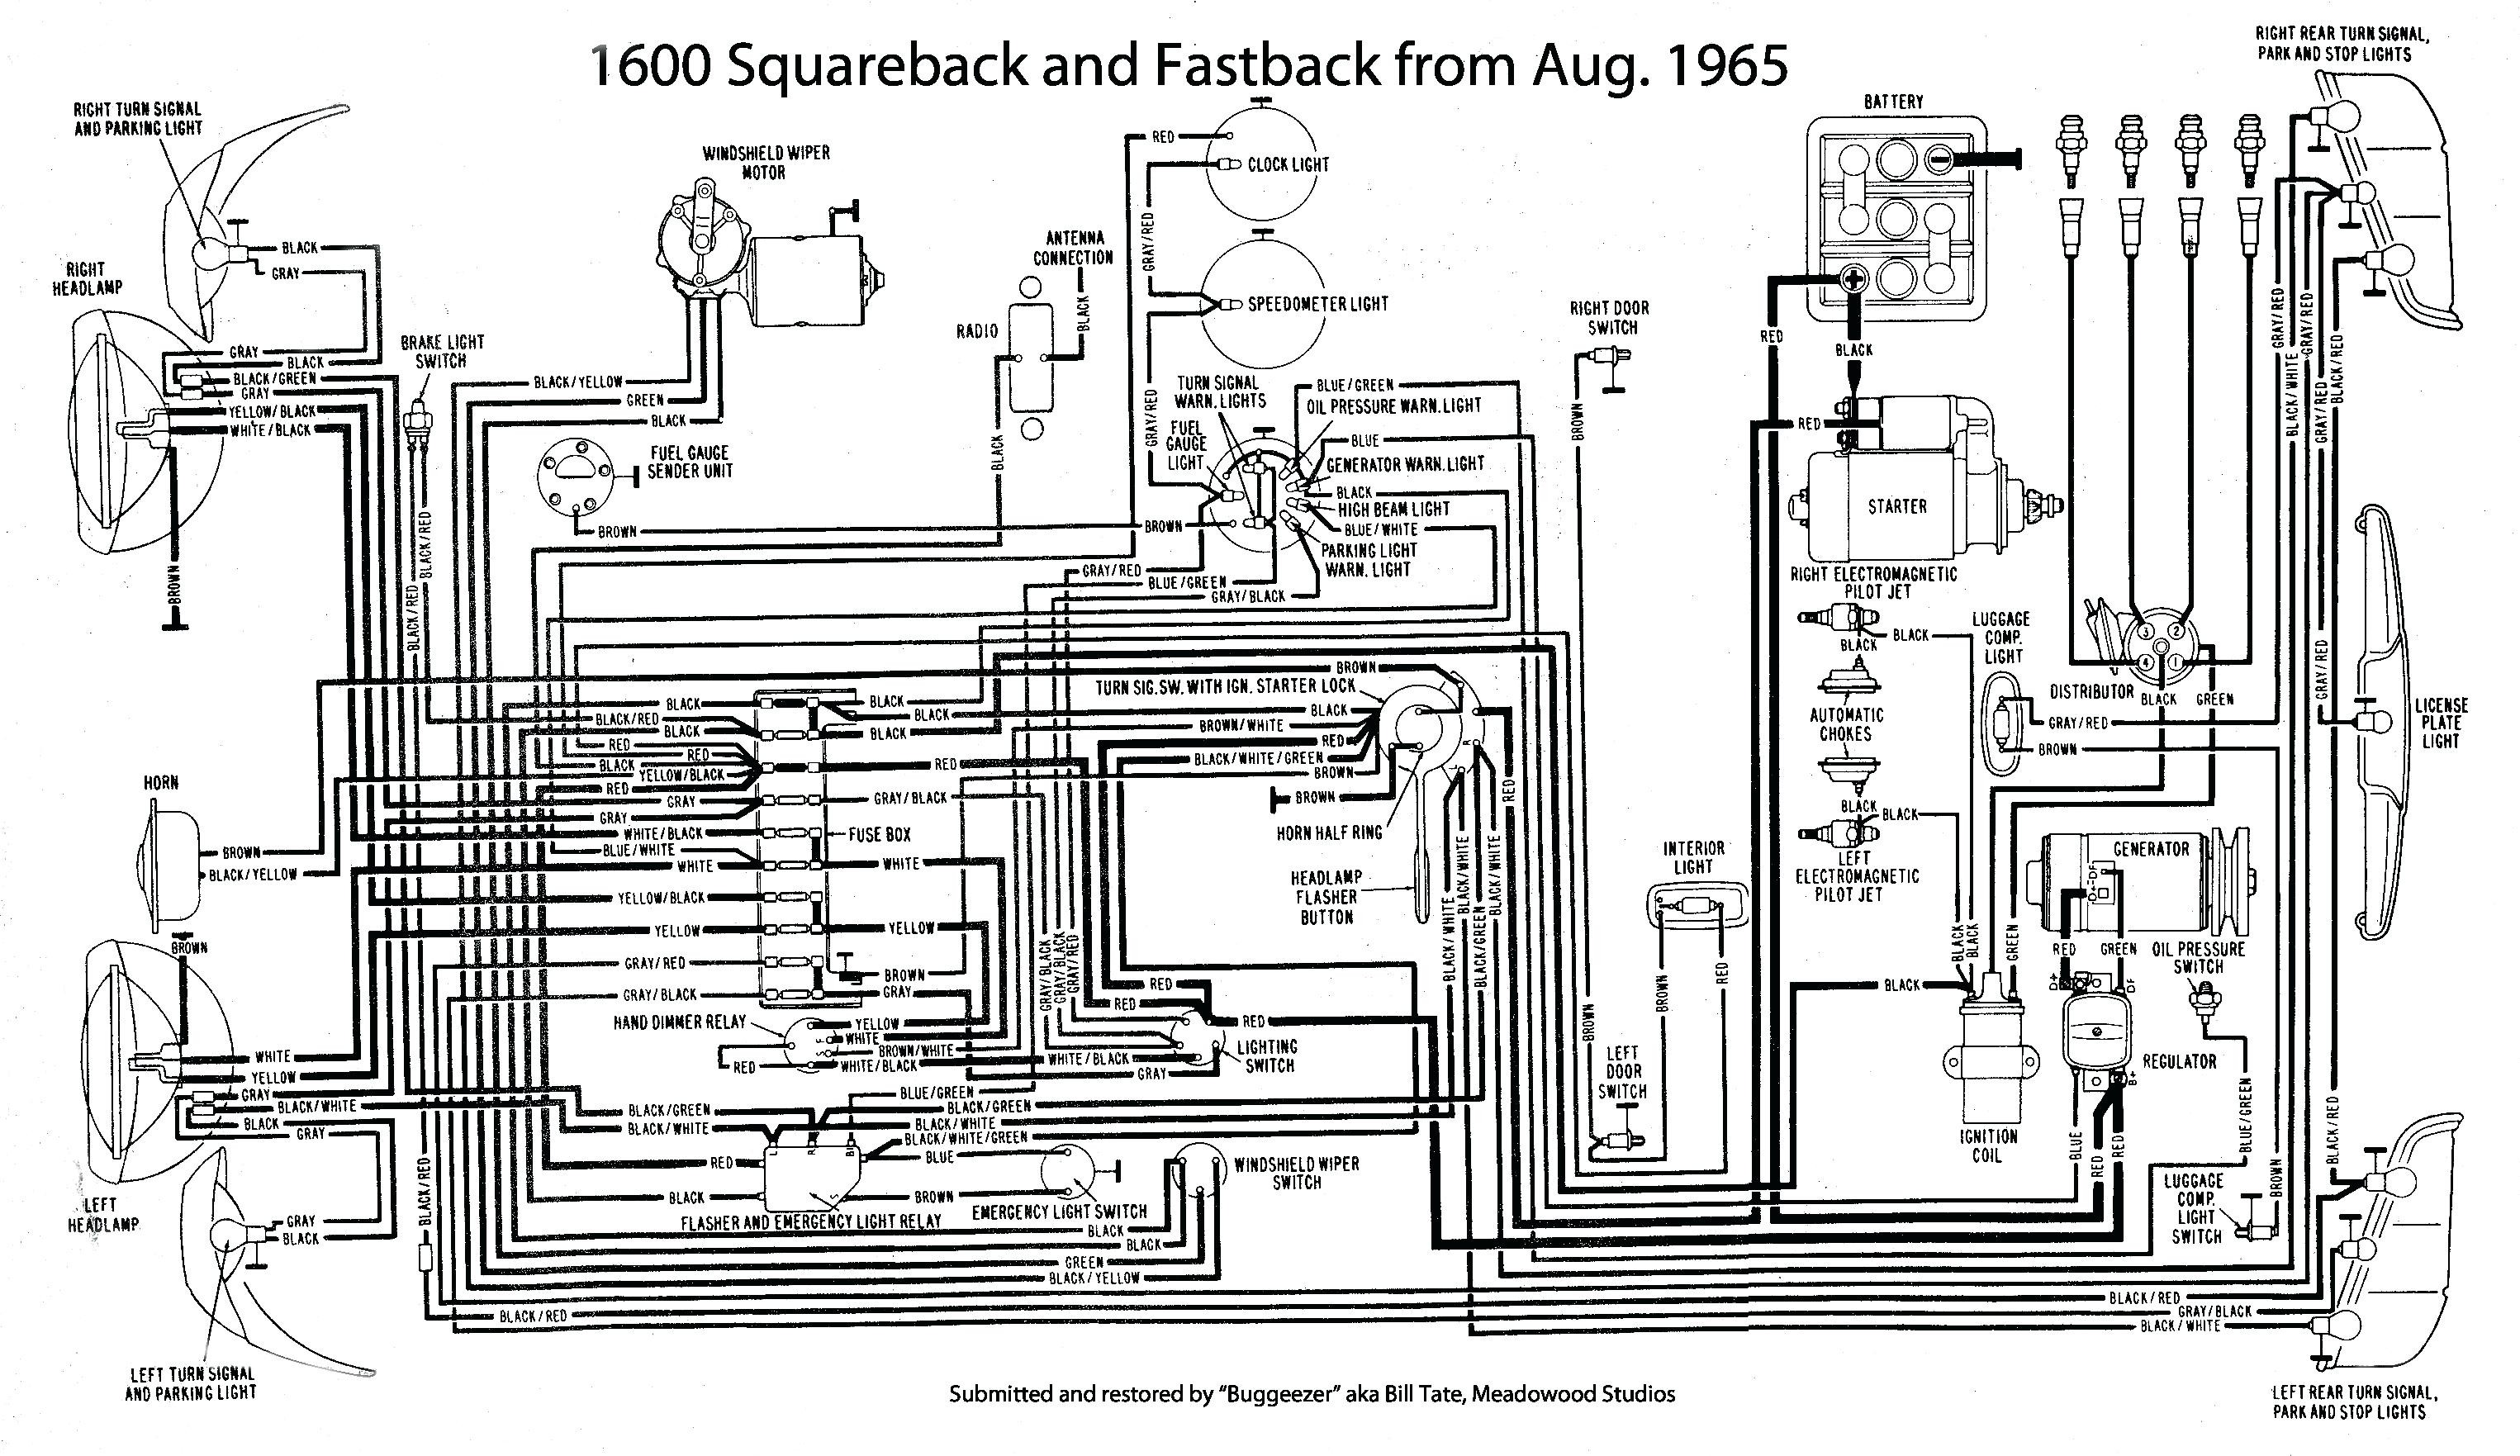 1970 vw beetle engine diagram 1973 vw engine wiring beetle diagram rh  detoxicrecenze com VW Beetle Alternator Wiring VW Trike Wiring